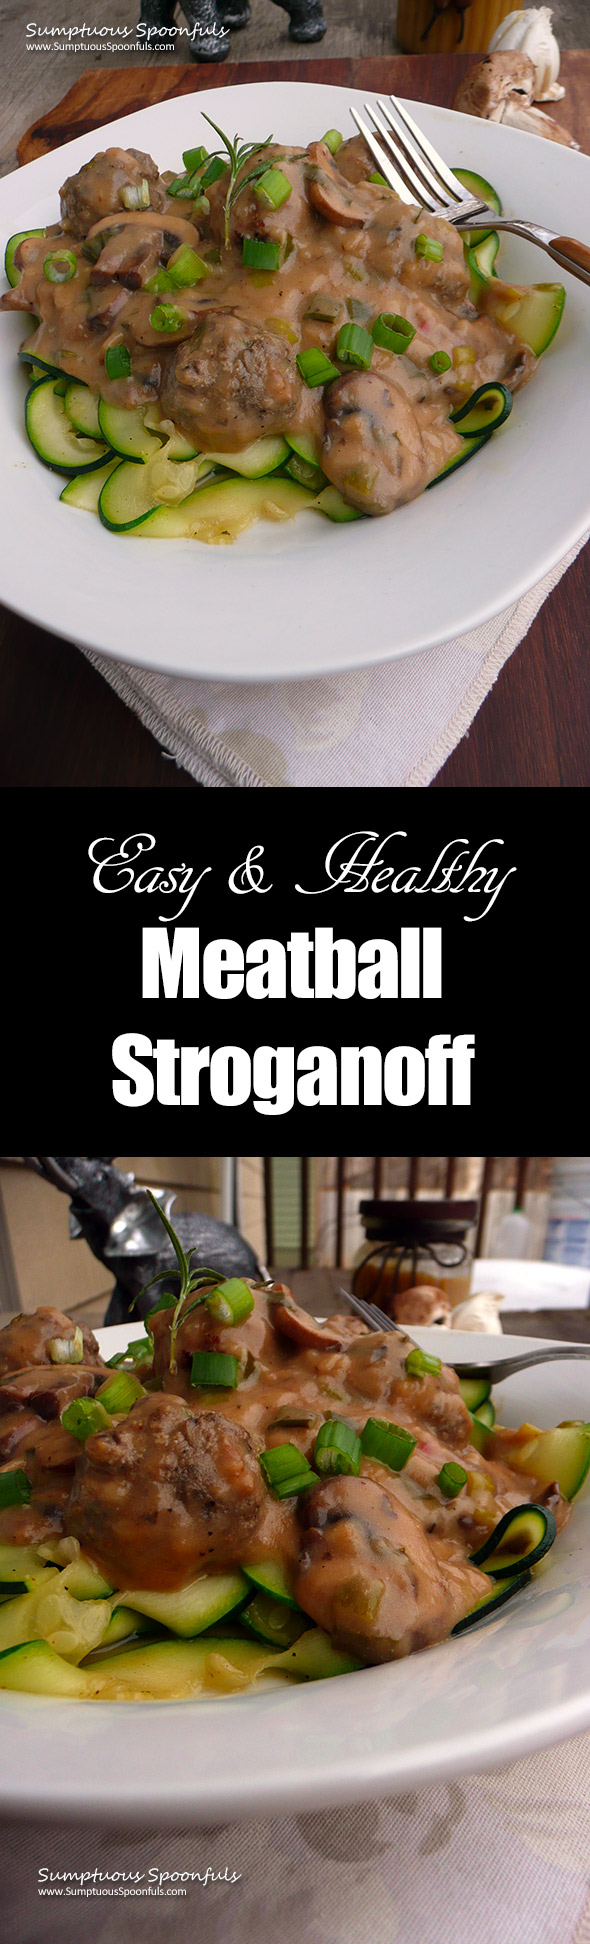 Easy Healthy Meatball Stroganoff ~ Sumptuous Spoonfuls #comfortfood #recipe